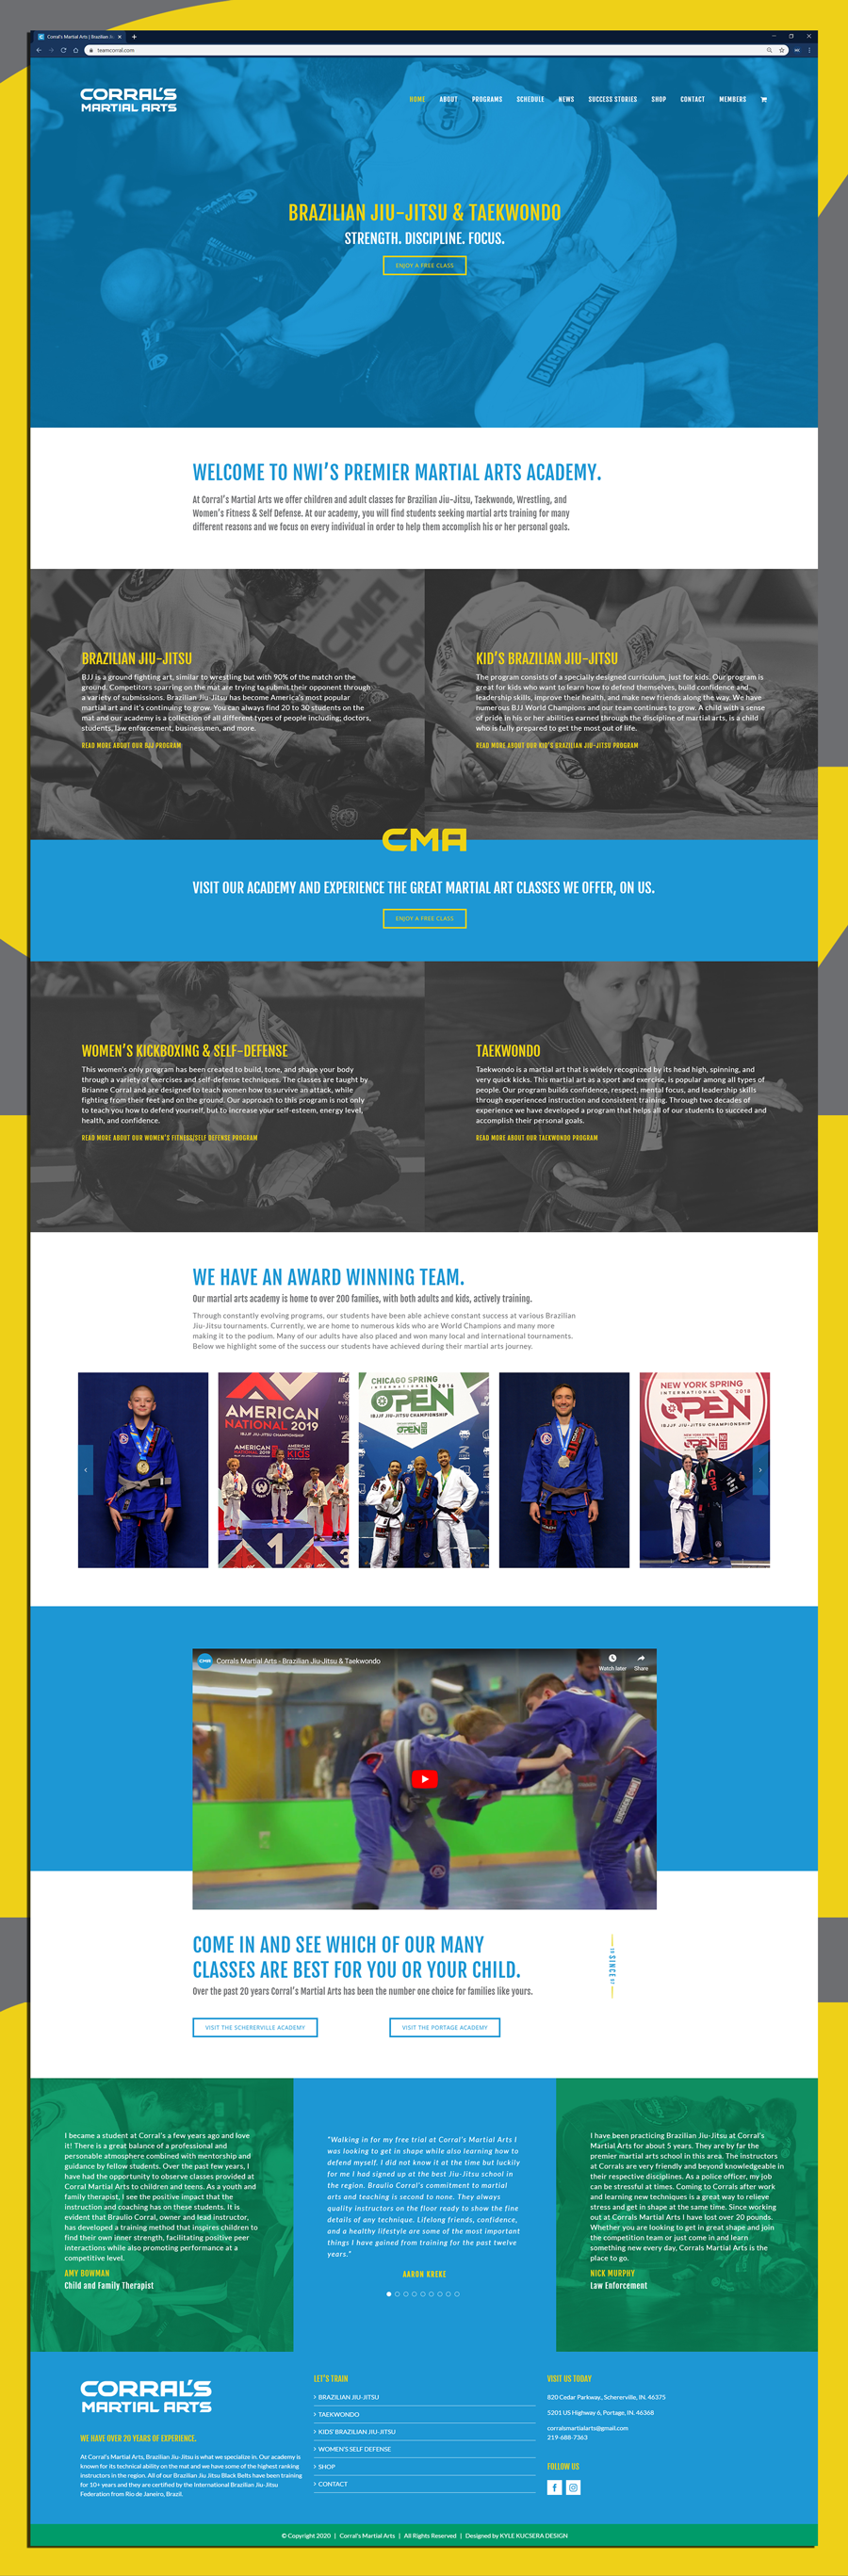 Website design for Corral's Martial Arts in Northwest Indiana